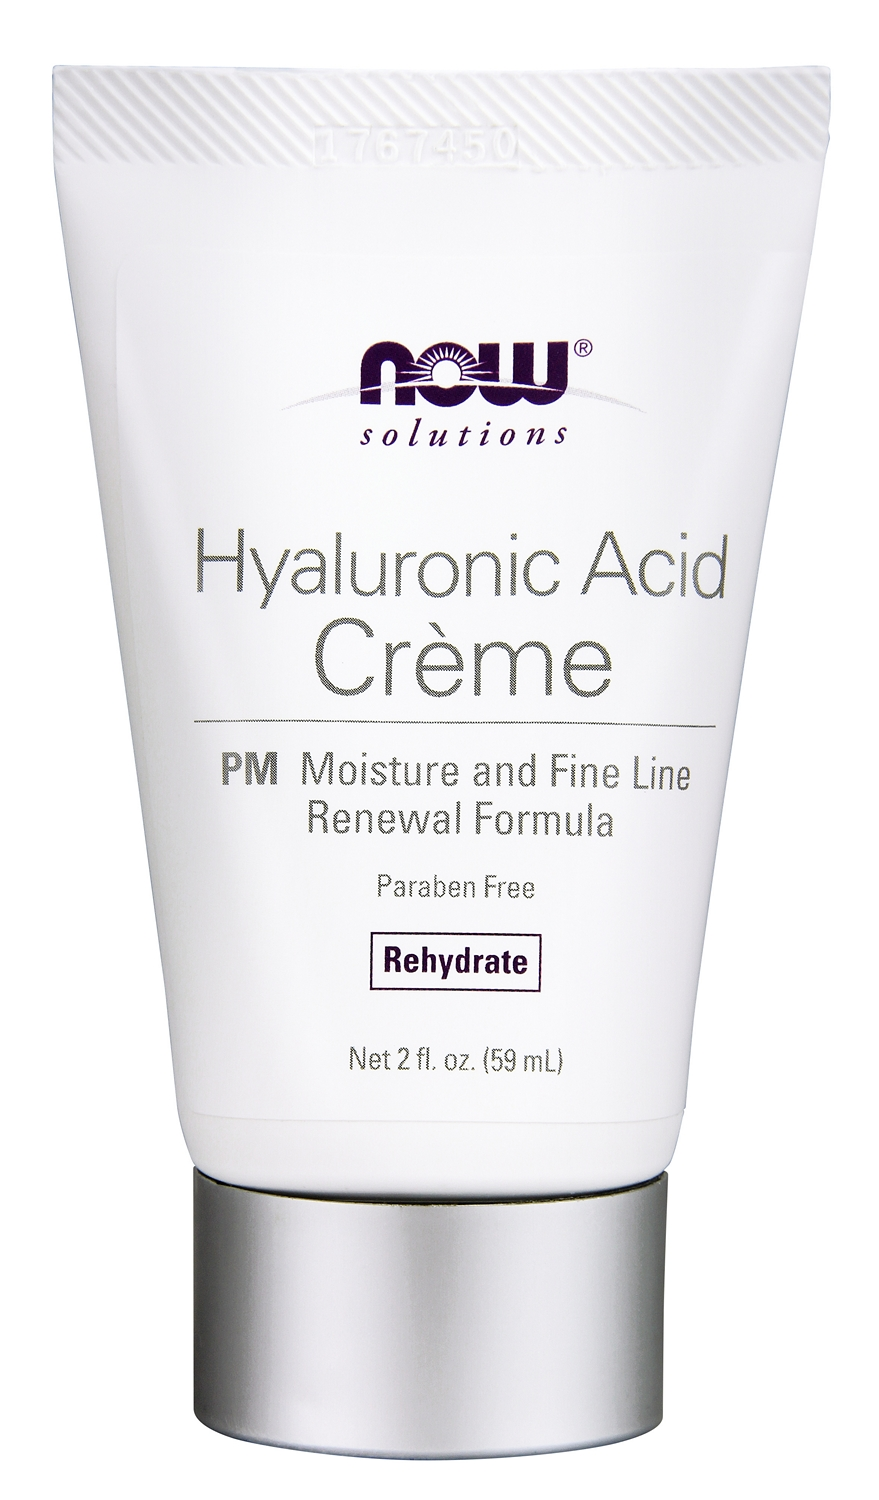 Hyaluronic Acid Creme PM Moisture Renew Formula 2 fl oz (59 ml) by NOW